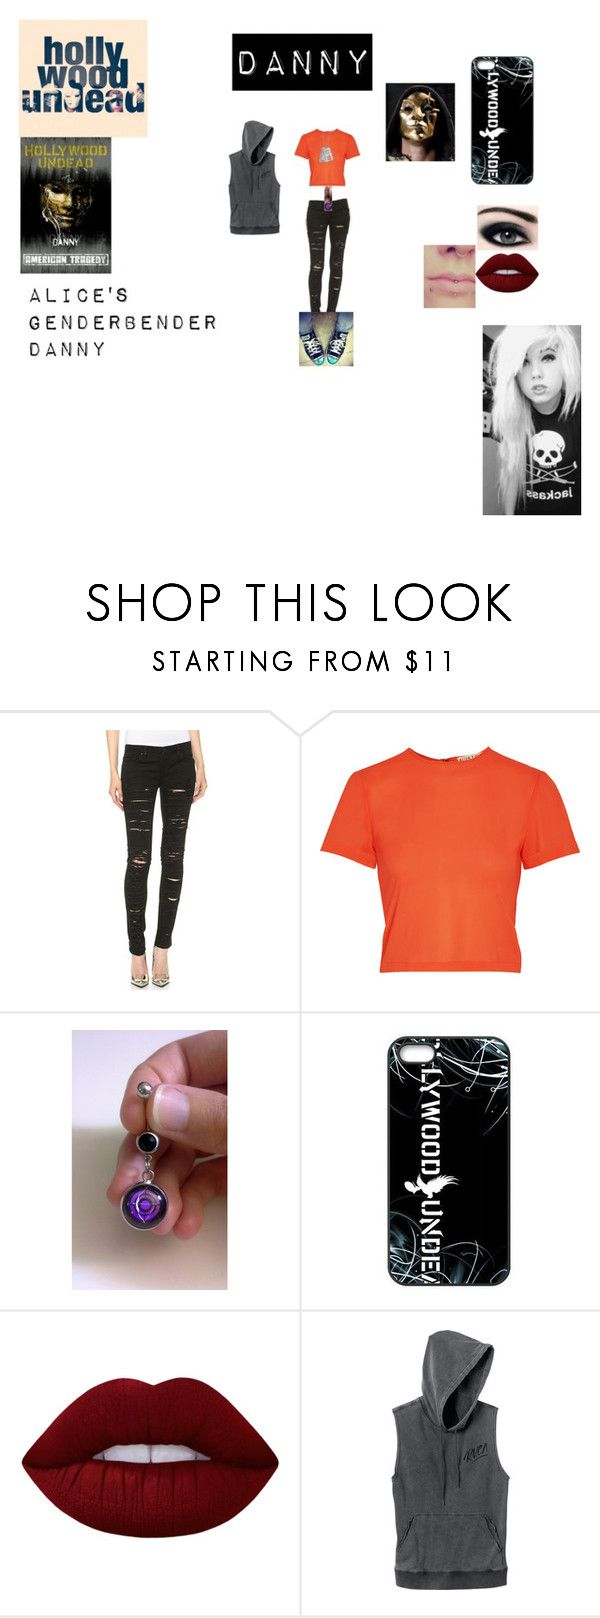 """""""Alice's GenderBender Danny!"""" by alice-the-skatergirl ❤ liked on Polyvore featuring Blank Denim, Alice + Olivia, Bellybutton, Lime Crime, RVCA, emo, scene, Danny and HU"""